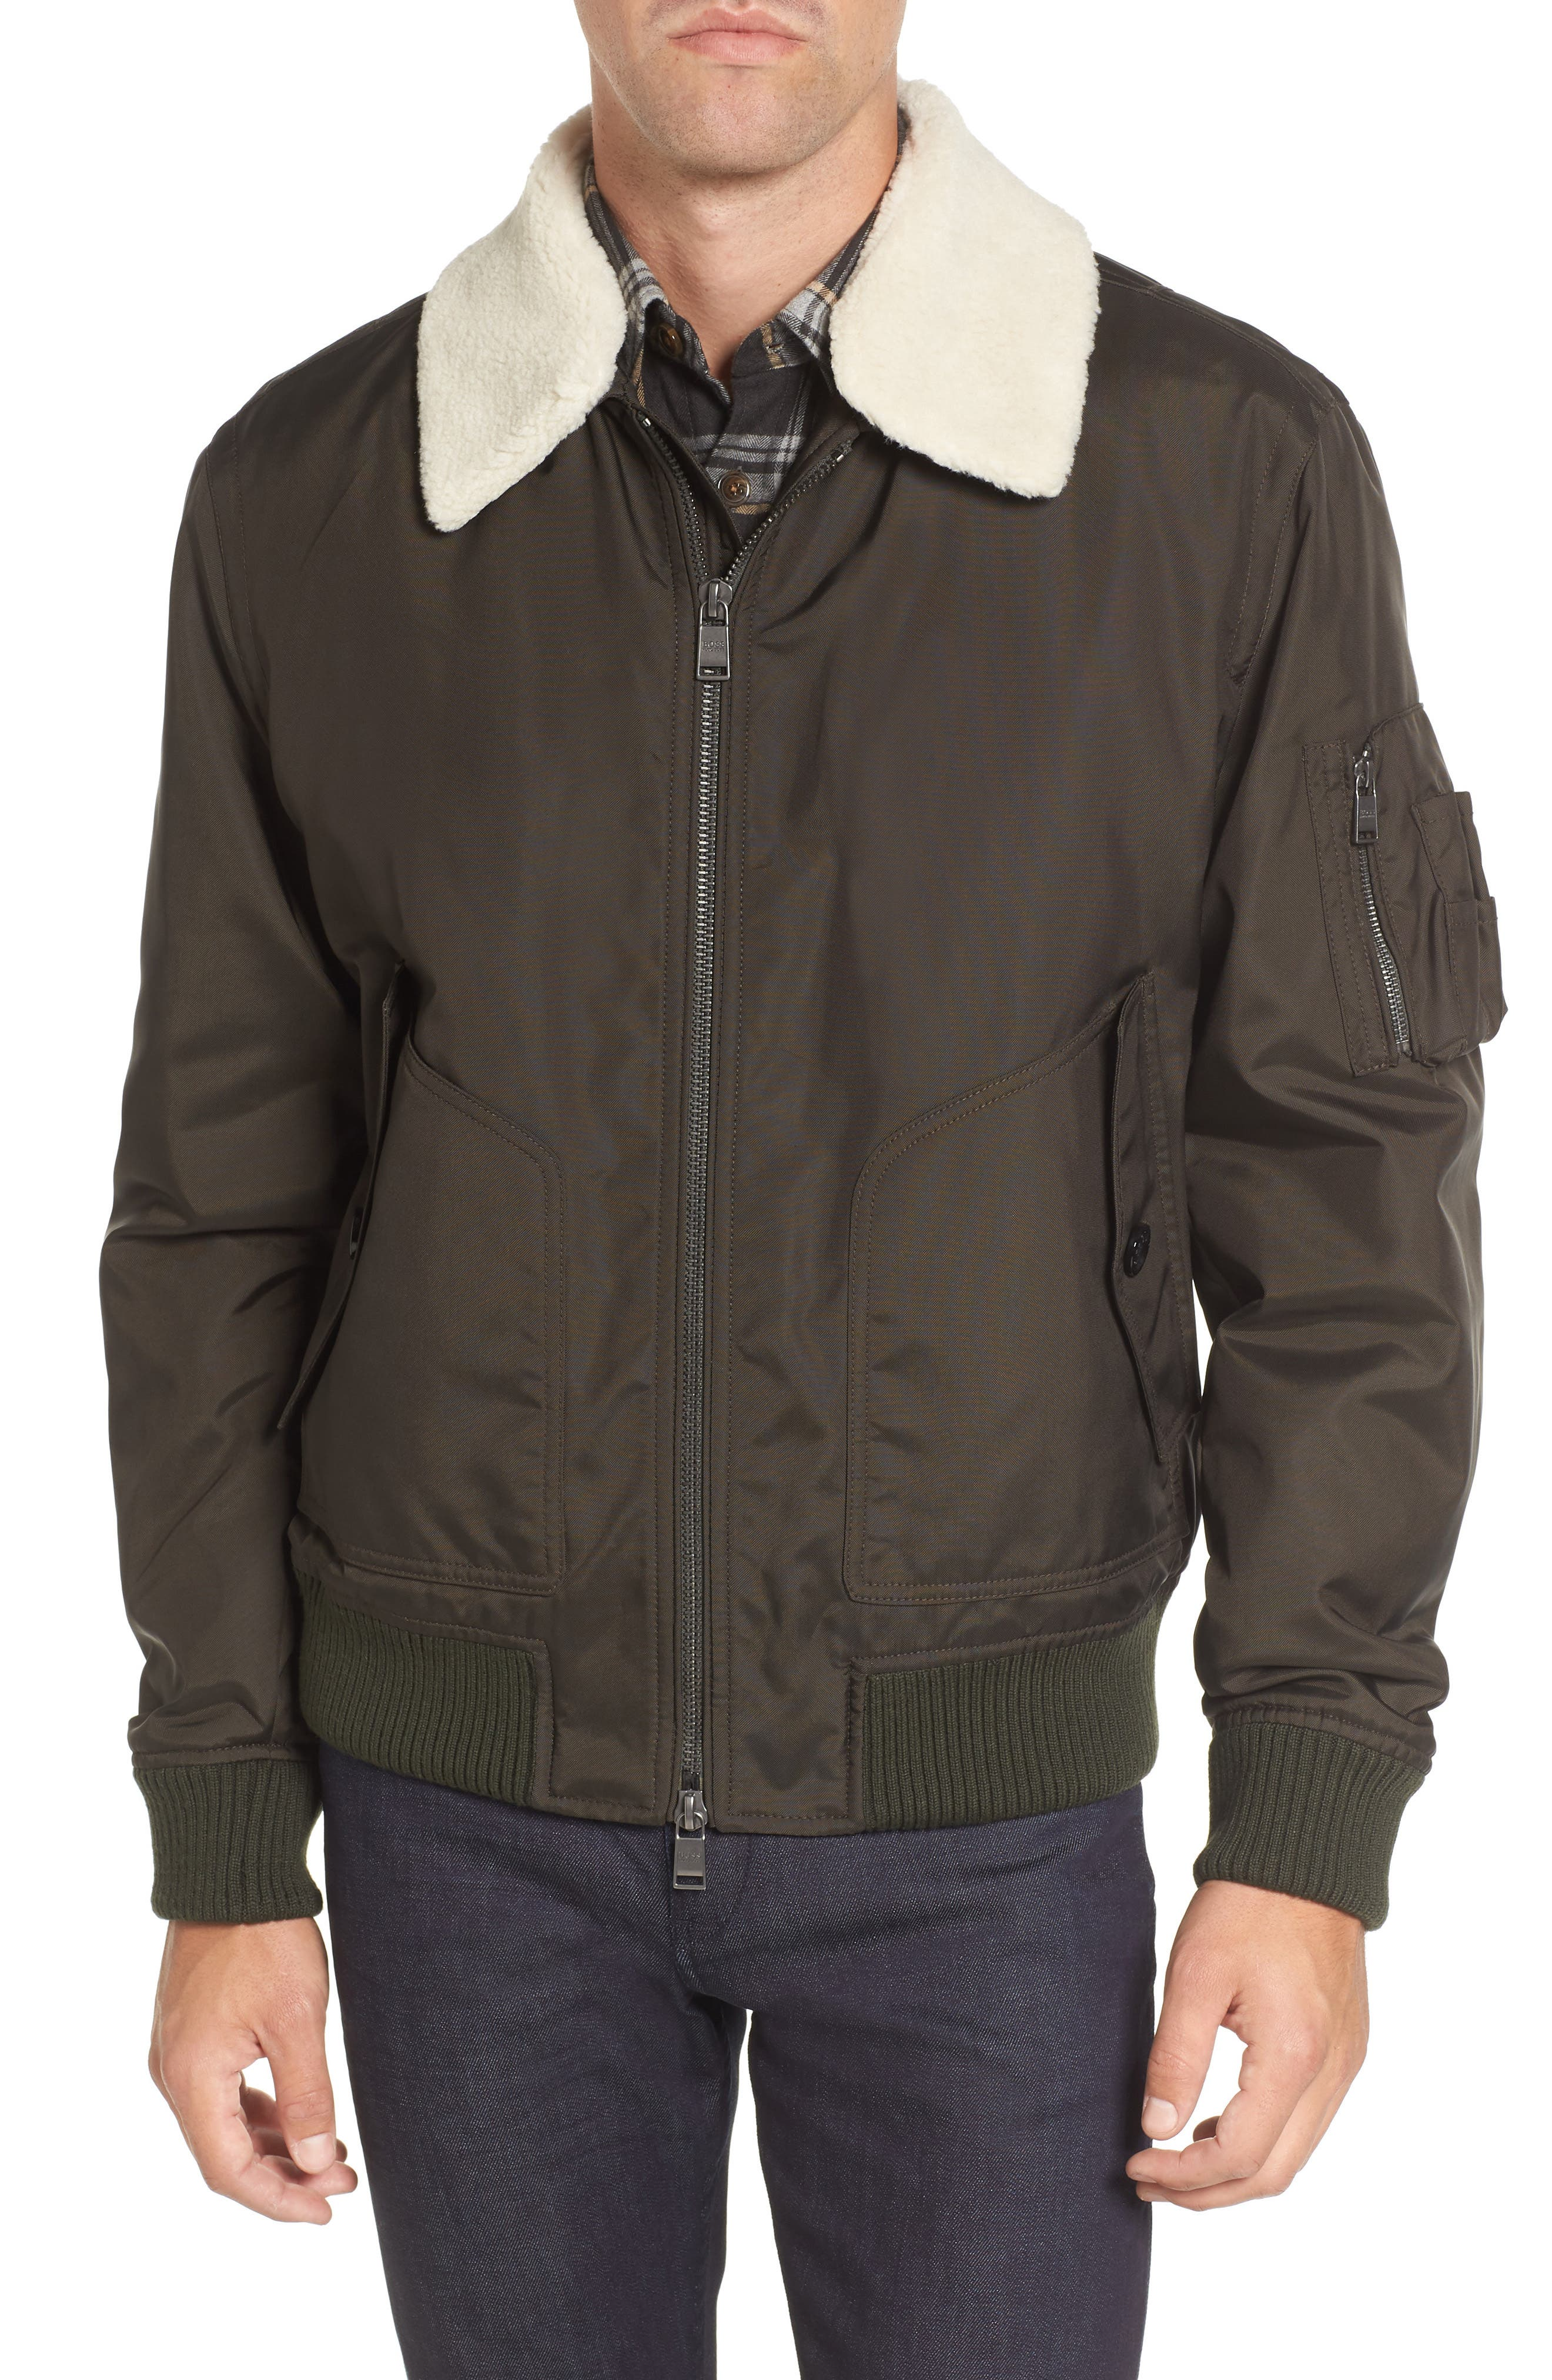 Cobra Aviator Jacket with Faux Fur Collar,                             Main thumbnail 1, color,